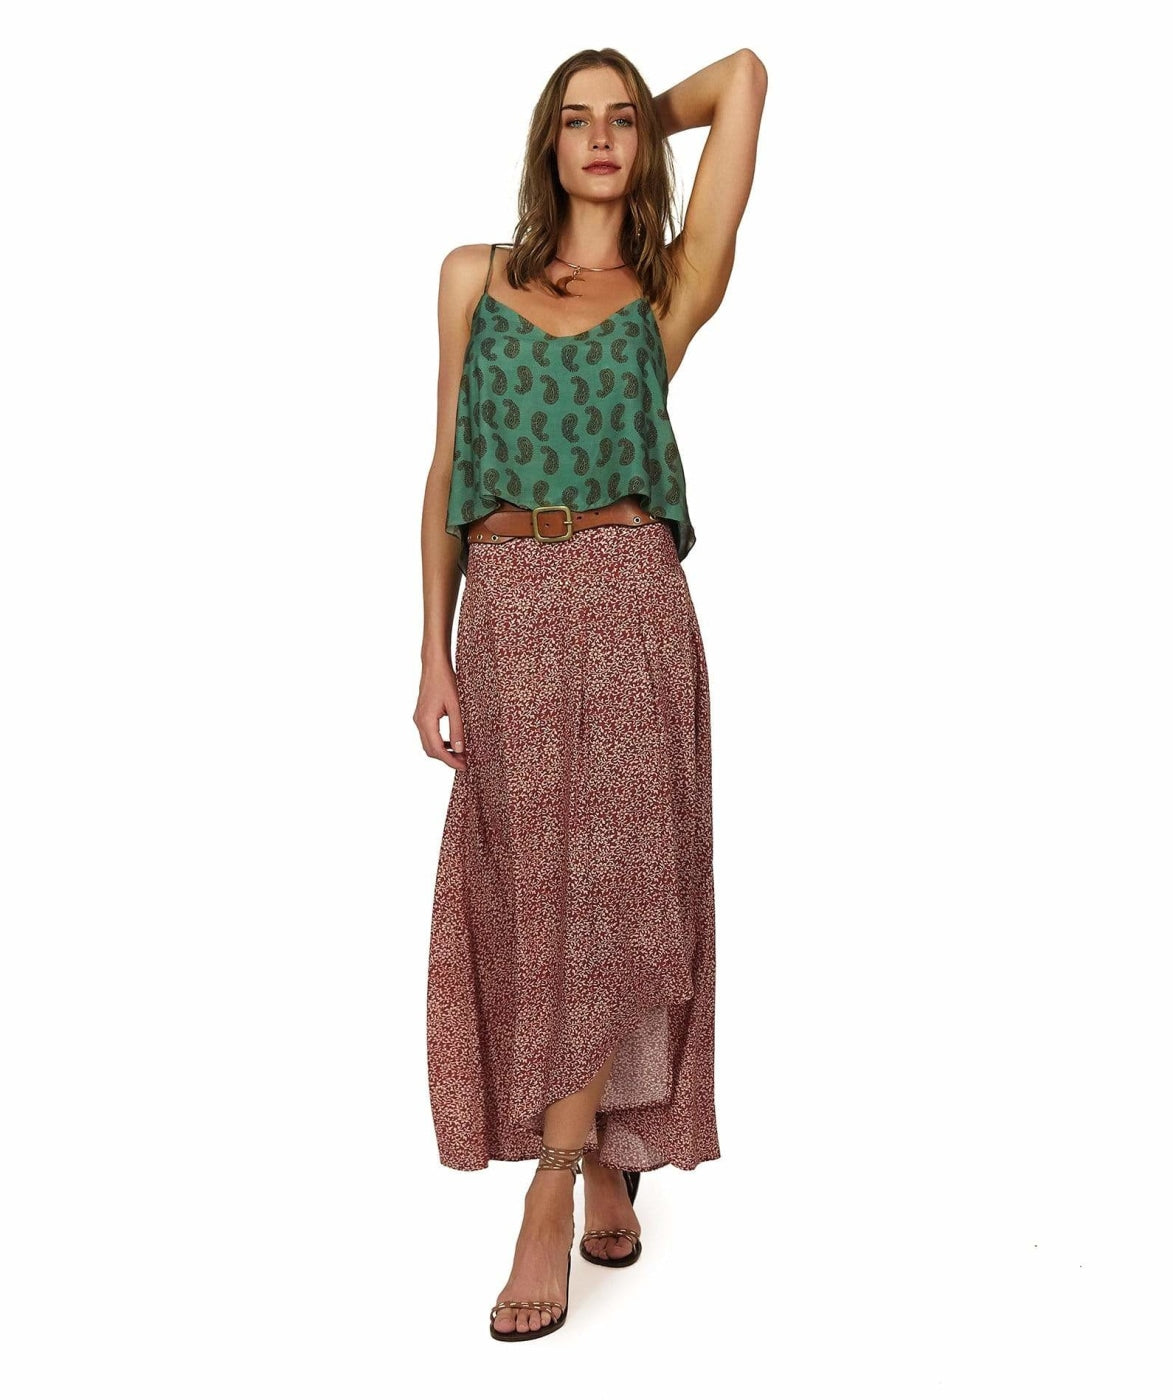 Verena Bia Long Skirt